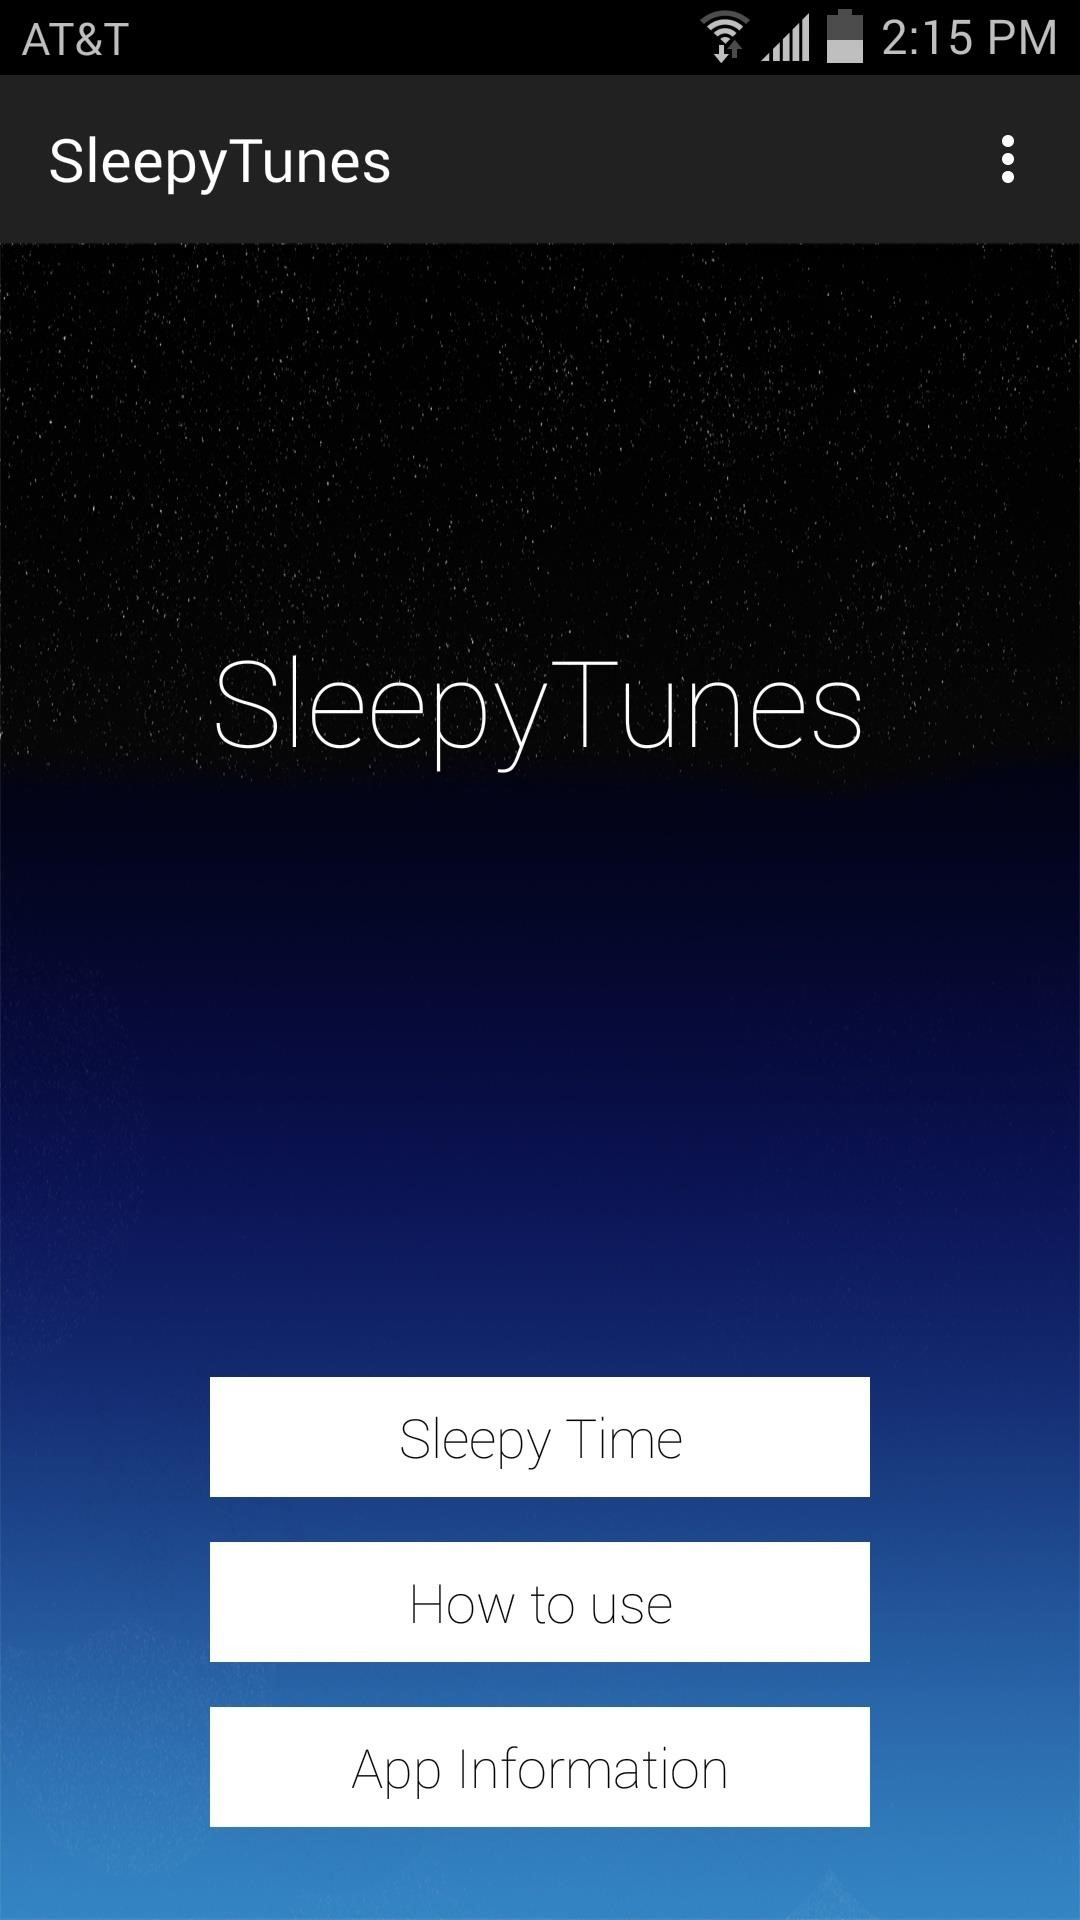 Auto-Lower Music Volume Gradually on Android to Drift Off to Sleep More Peacefully